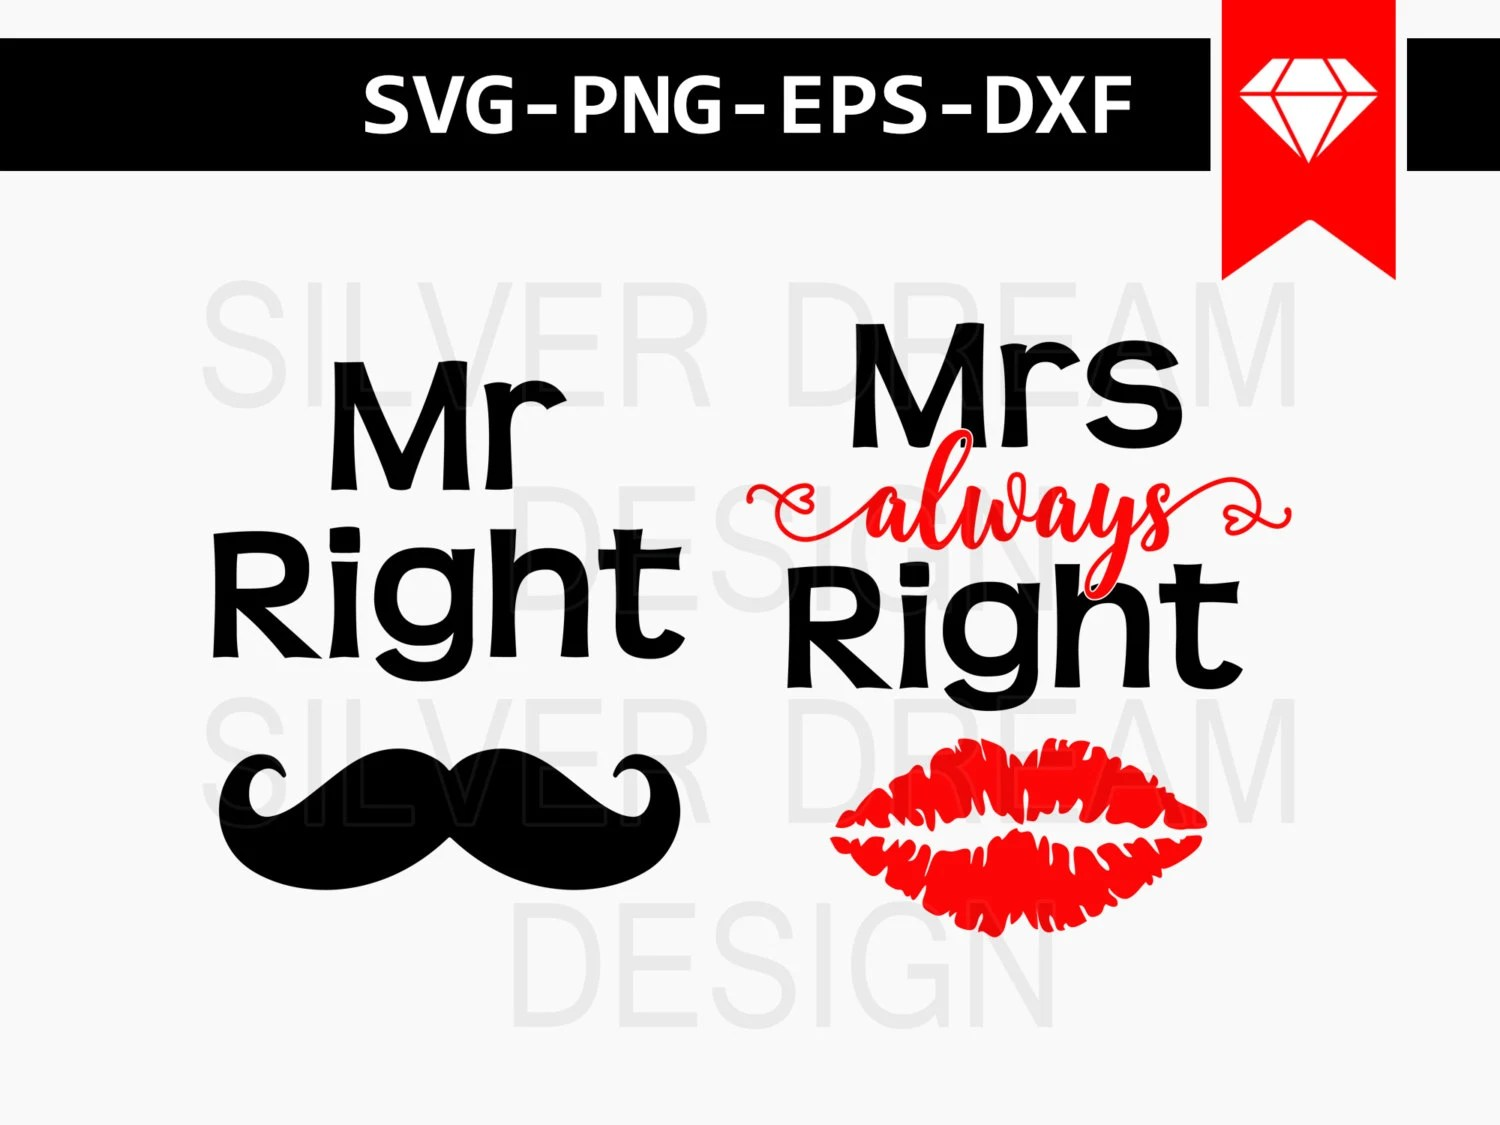 Mr Und Mrs Right Bettwäsche Mr Right Svg File Mrs Always Right Svg Mr And Mrs Couple